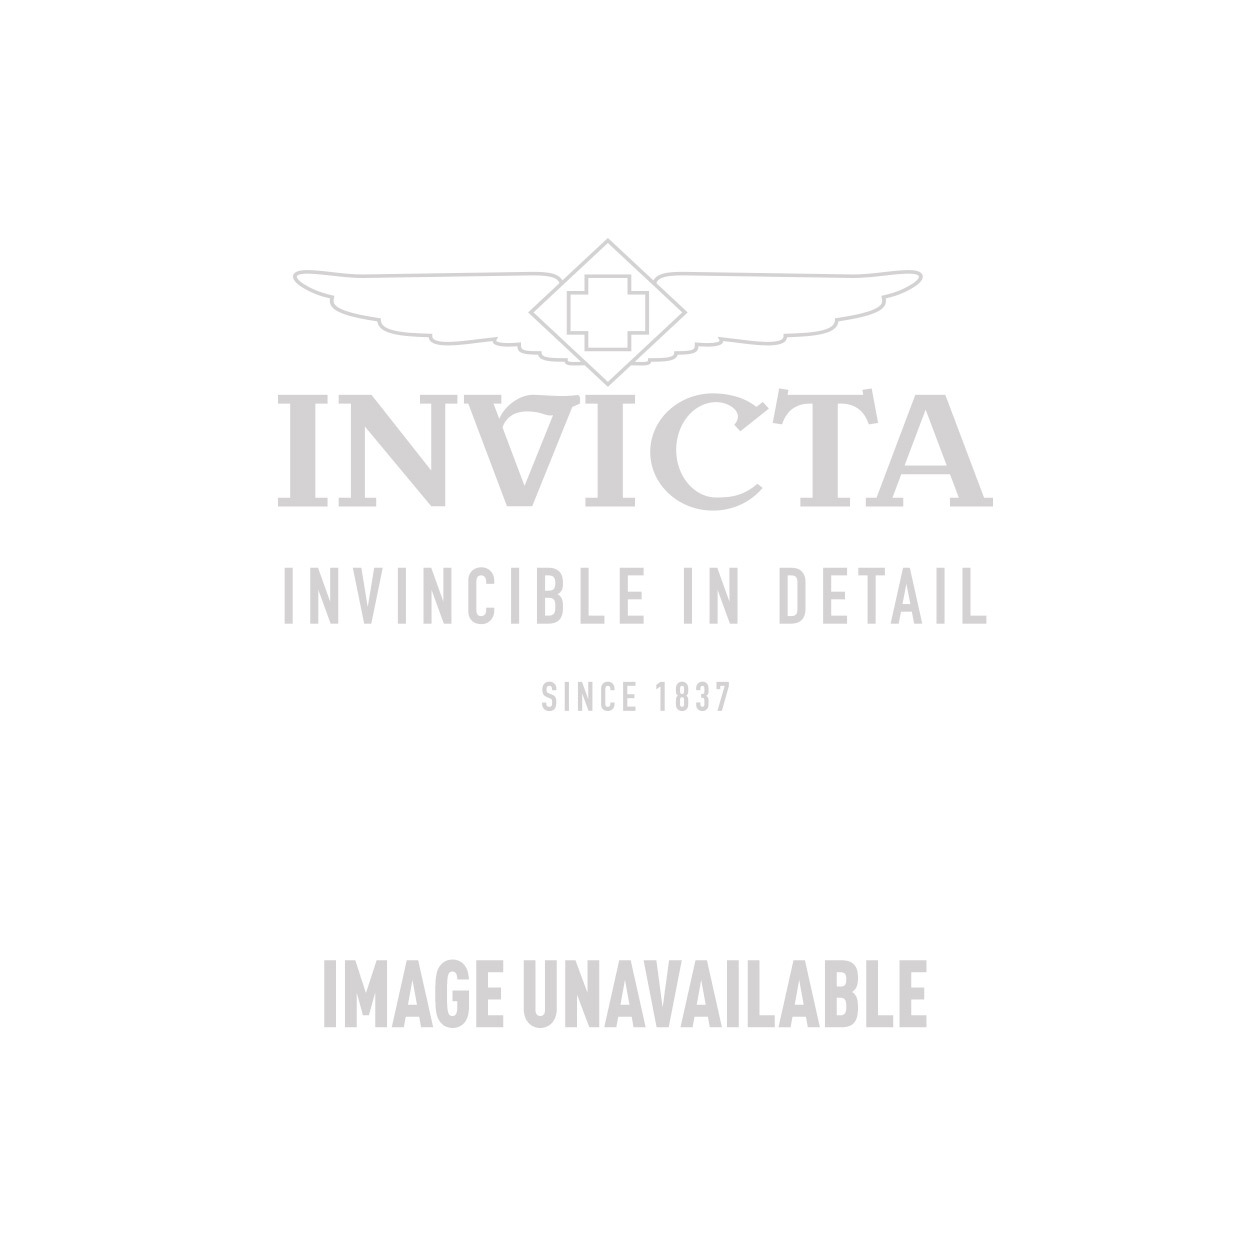 Invicta S1 Rally Automatic Watch - Rose Gold, Stainless Steel case with Steel, Rose Gold tone Stainless Steel band - Model 3548